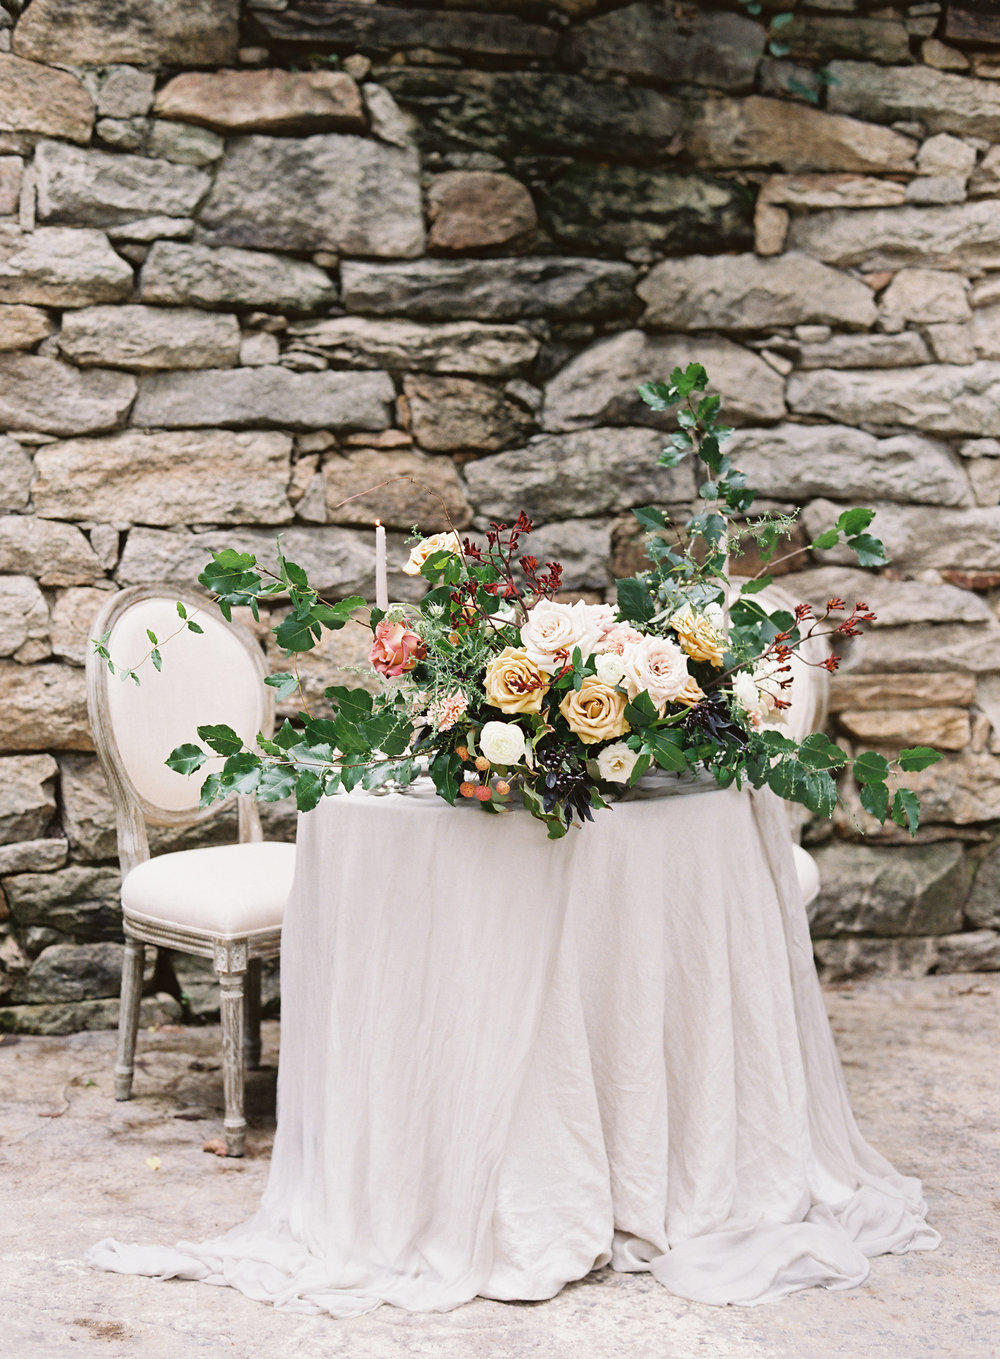 Autumn Wedding Inspiration at the Mill at Fine Creek by Richmond Virginia Wedding Planner East Made Event Company and Michael and Carina Photography34.jpg